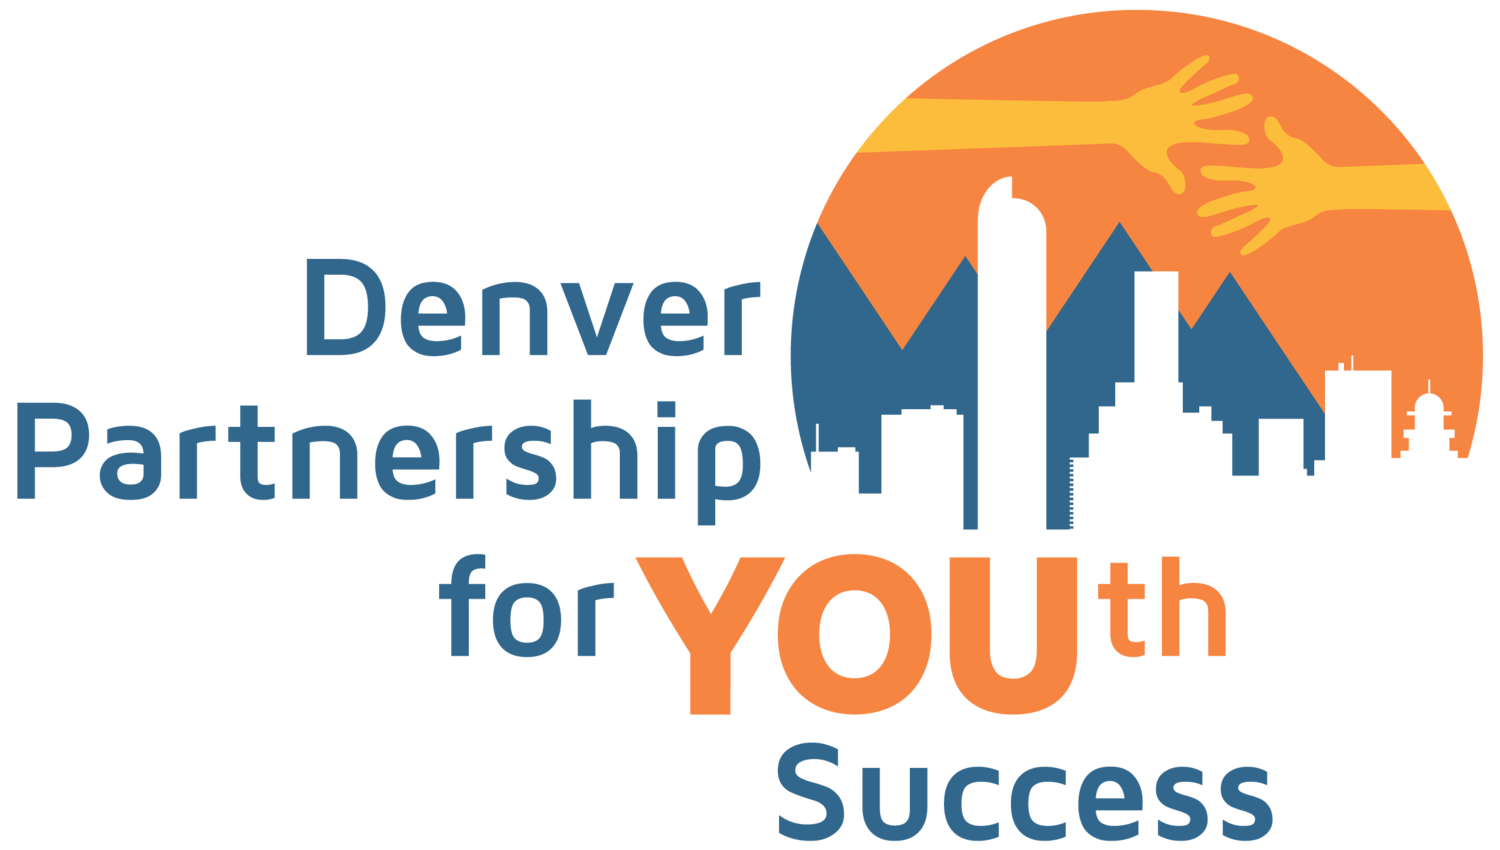 Denver Partnership For Youth Success